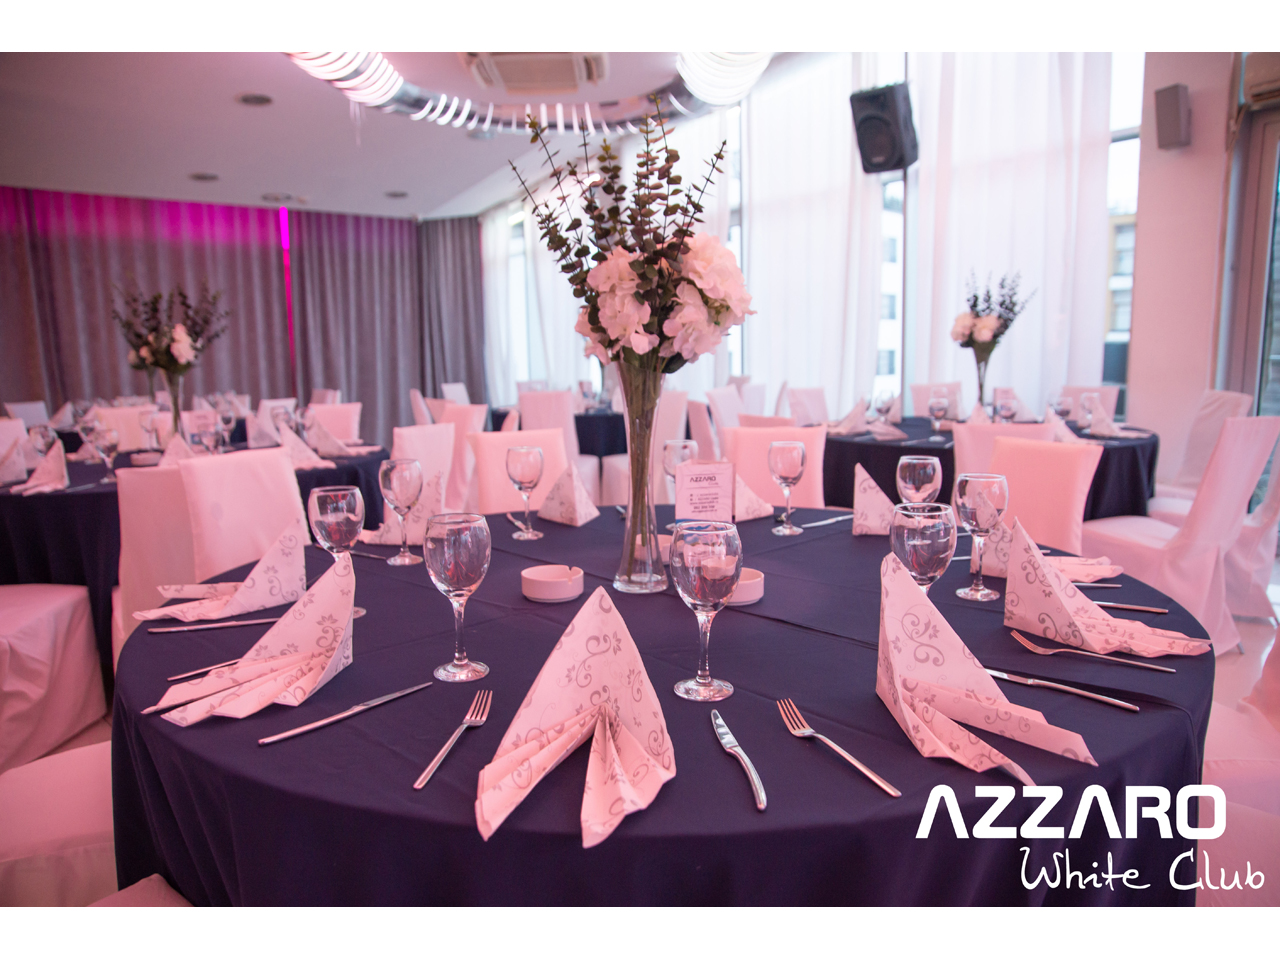 BUSINESS CLUB AZZARO Restaurants Beograd